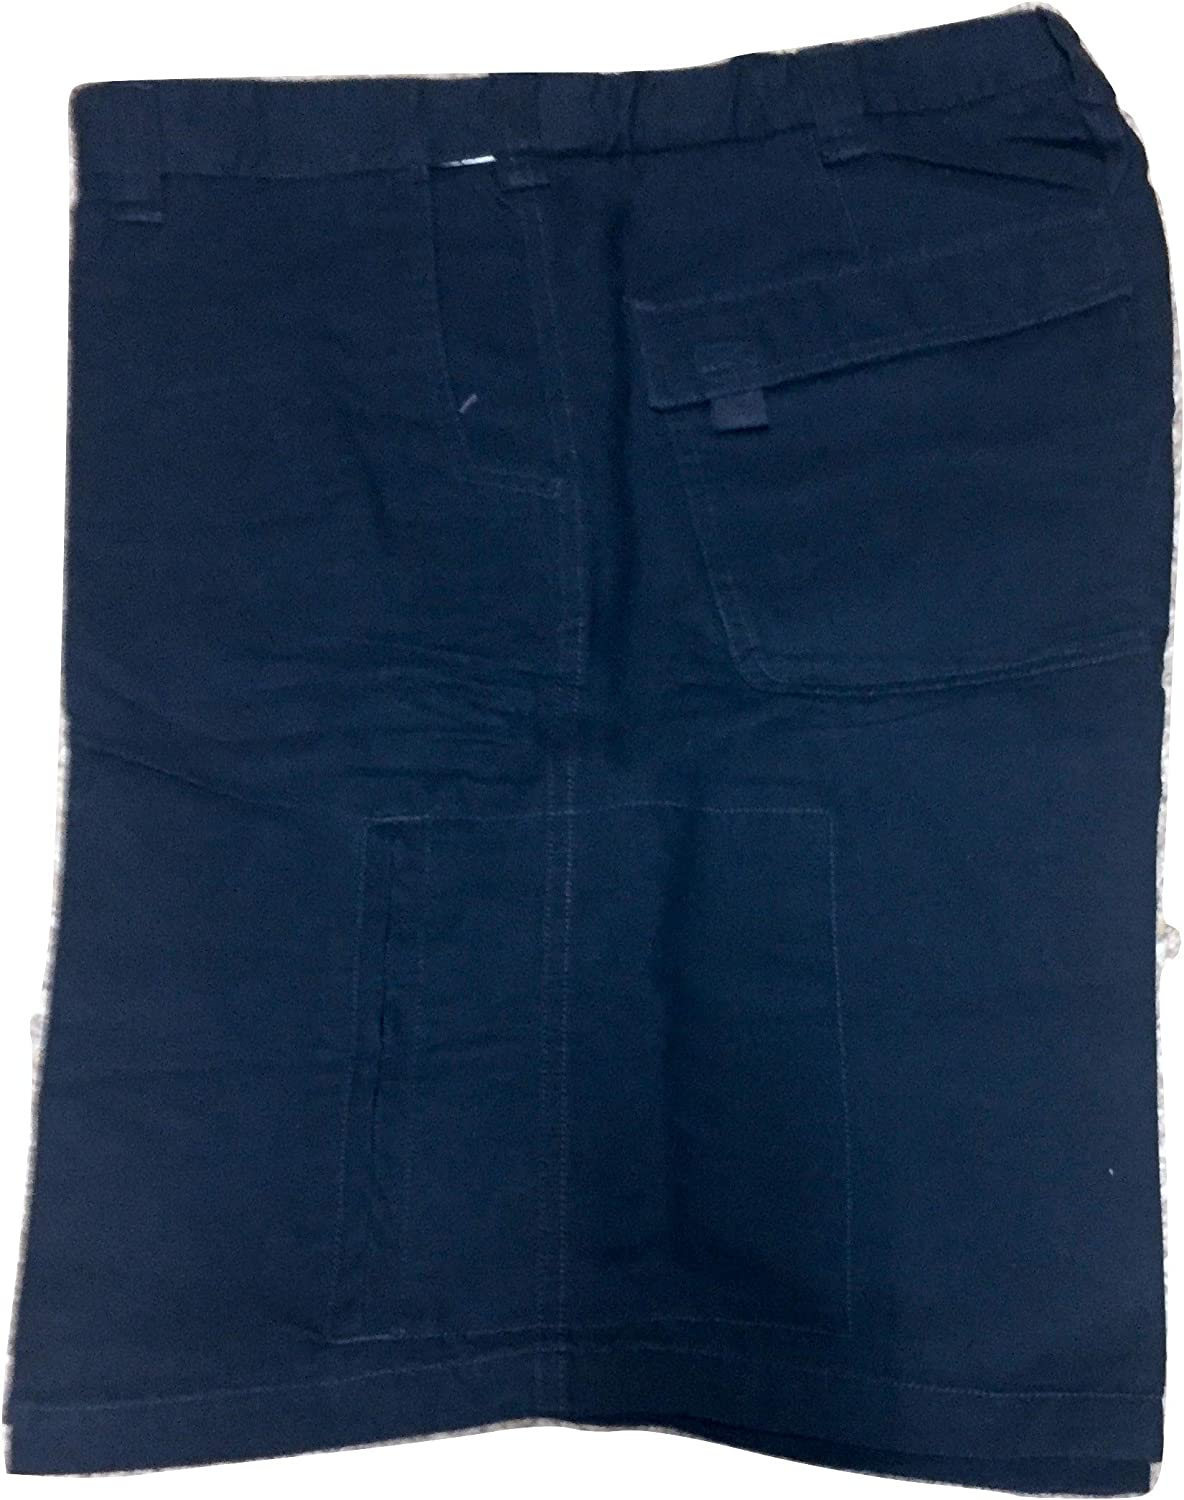 Copper Cove Tall Man's Nashville-Davidson Mall Navy Free shipping on posting reviews Longer Expander Length S Waist Cargo